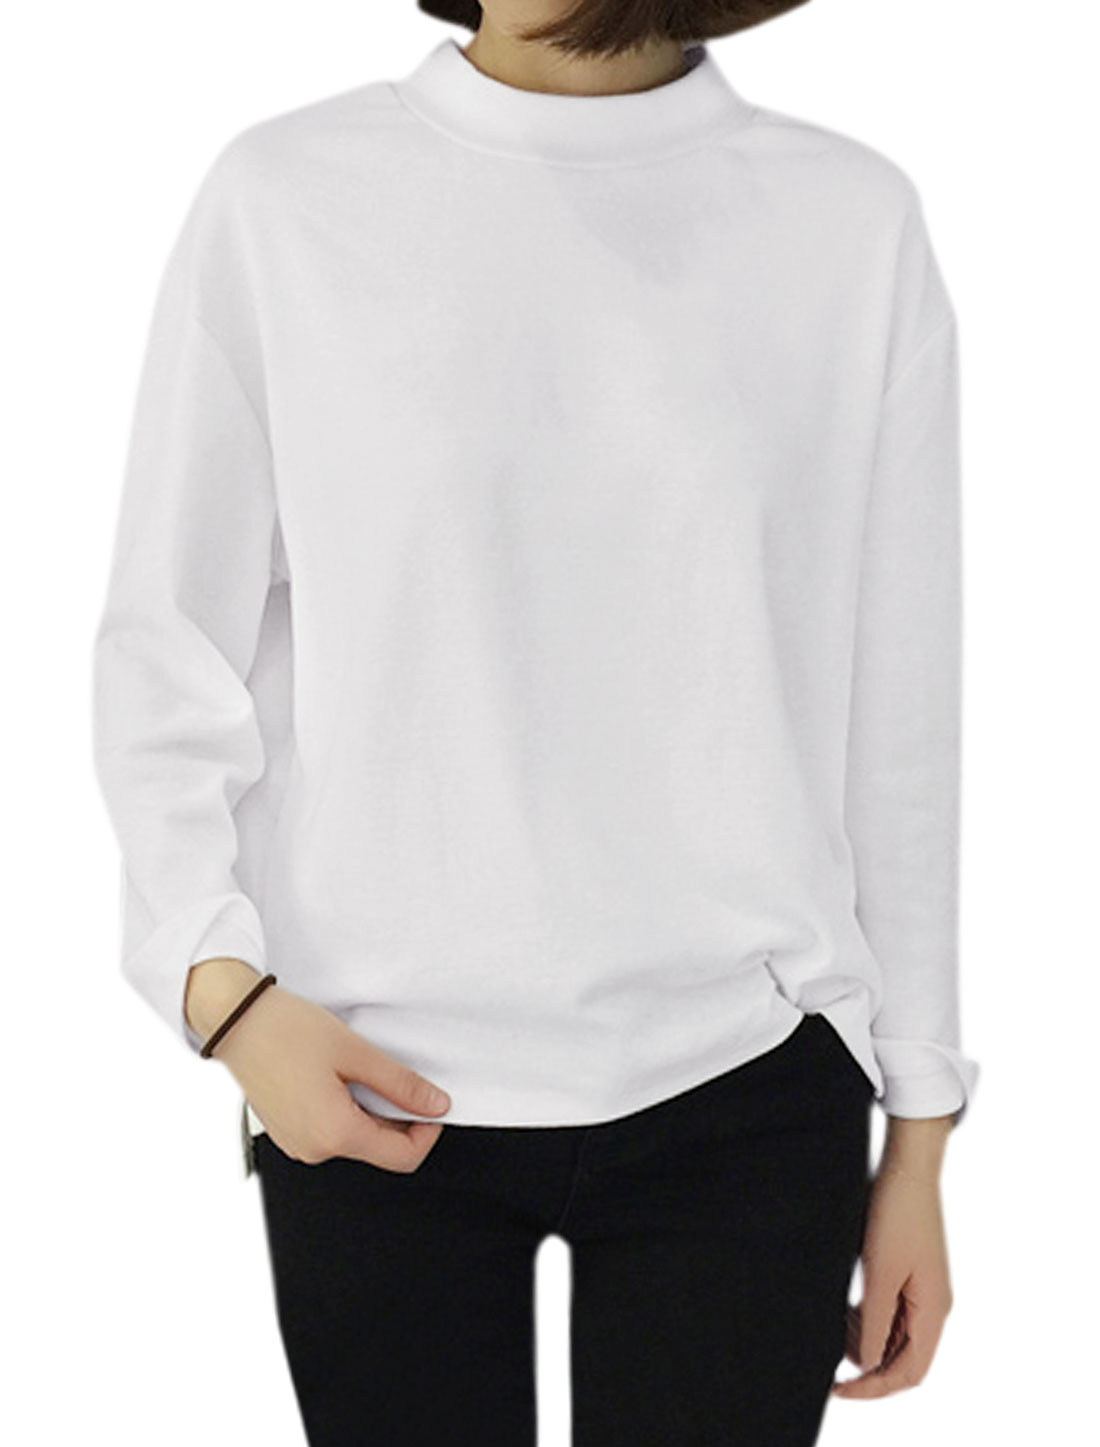 Ladies Long Sleeves Stand Collar Loose Tee Shirt White S